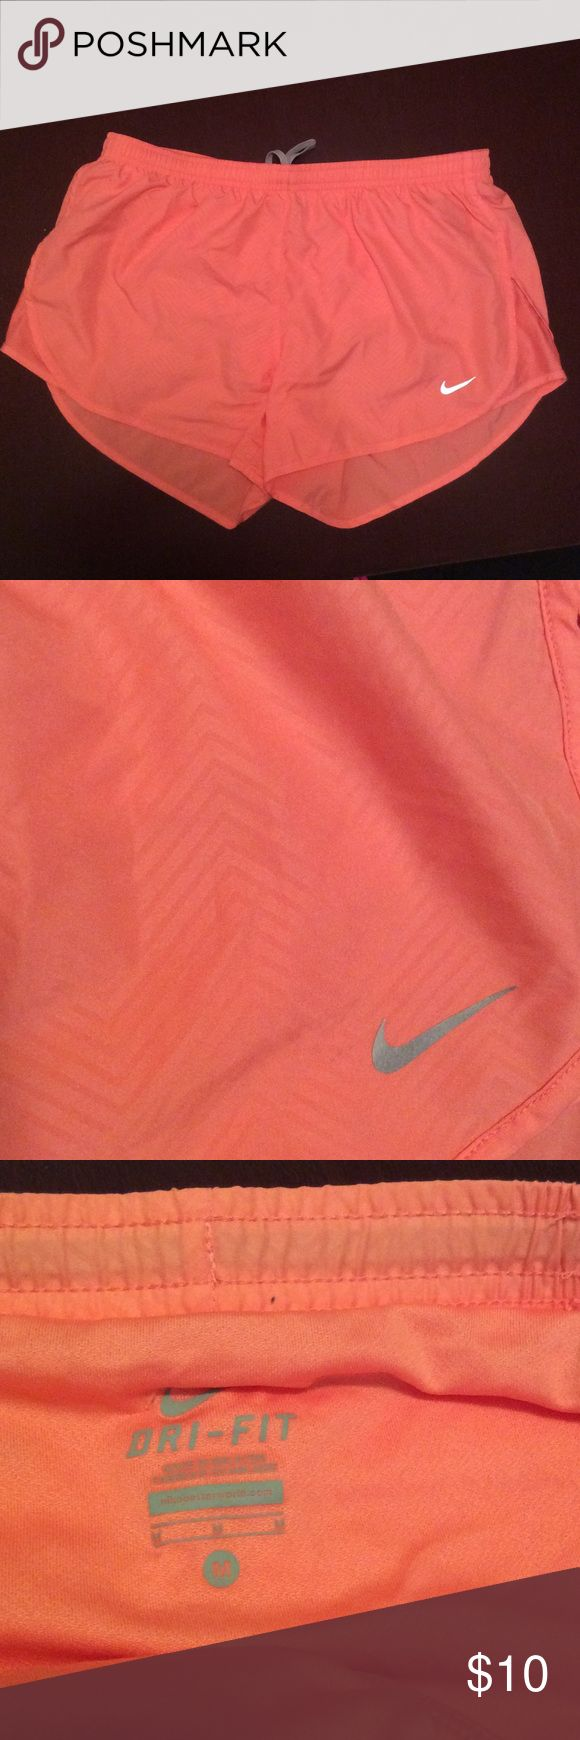 Nike Dri-Fit peach shorts sz M Only worn a few times. In very good used condition. Nike Shorts